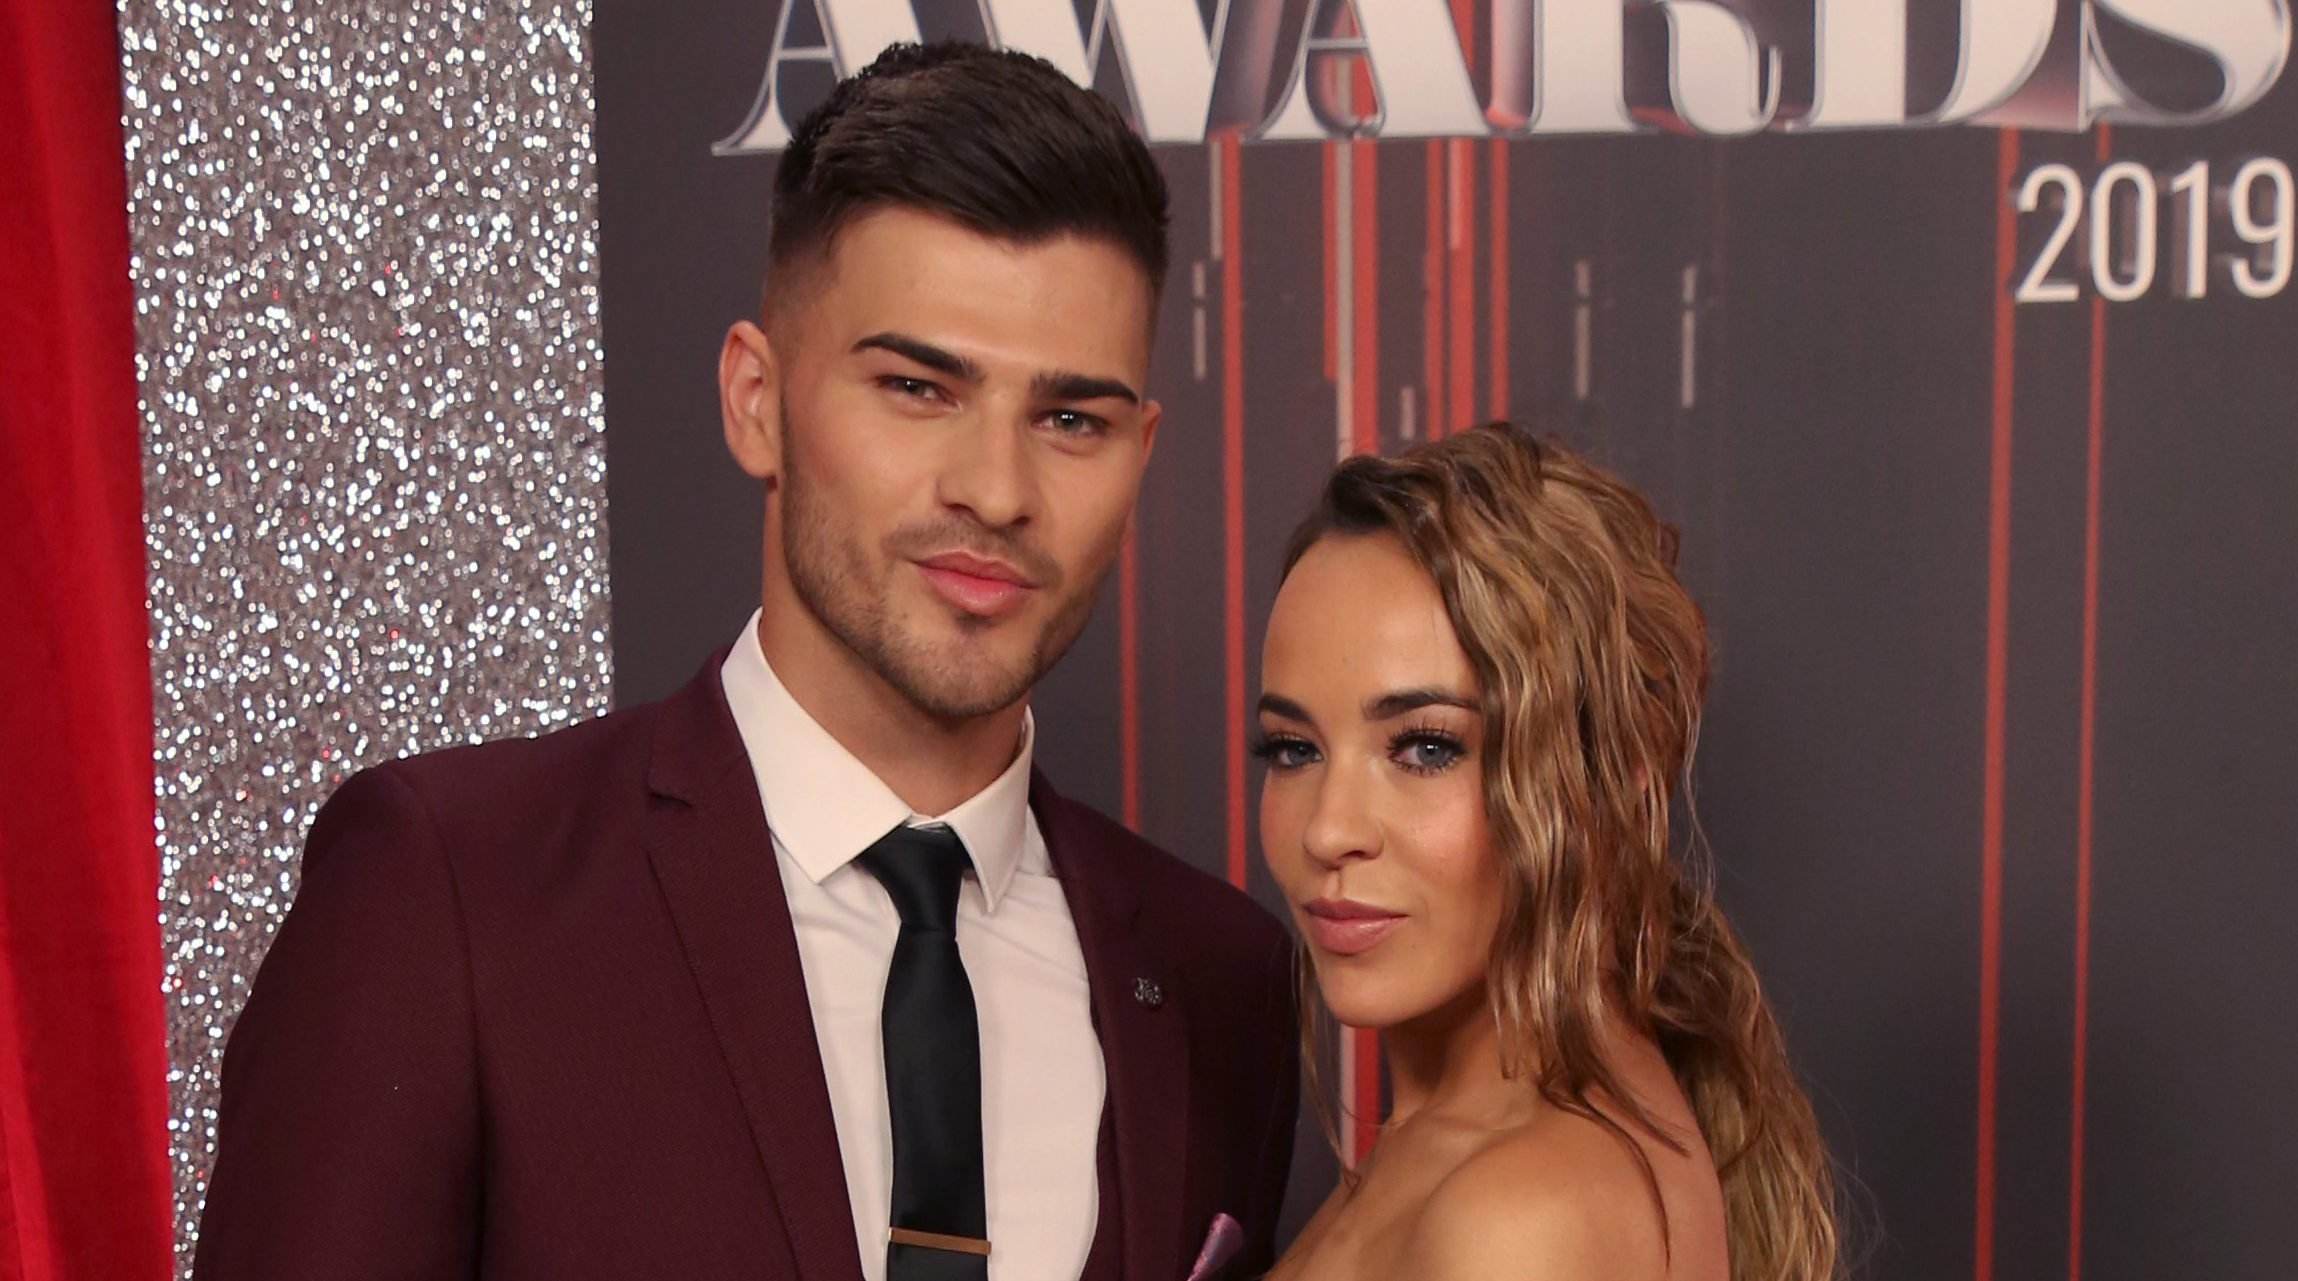 Stephanie Davis splits from Hollyoaks co-star Owen Warner after nine months